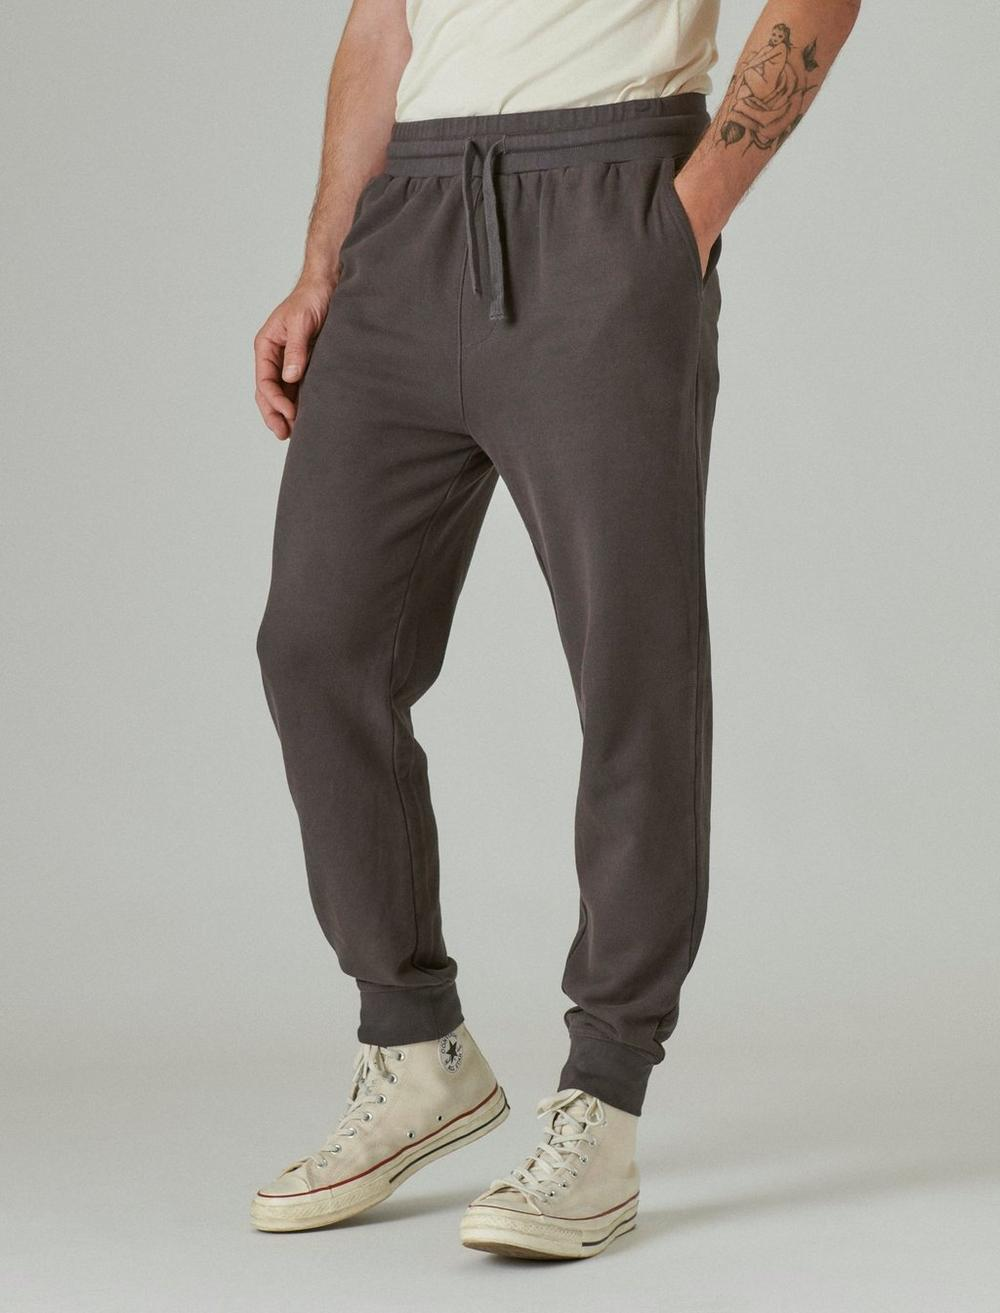 SUEDED FRENCH TERRY JOGGER PANT, image 5